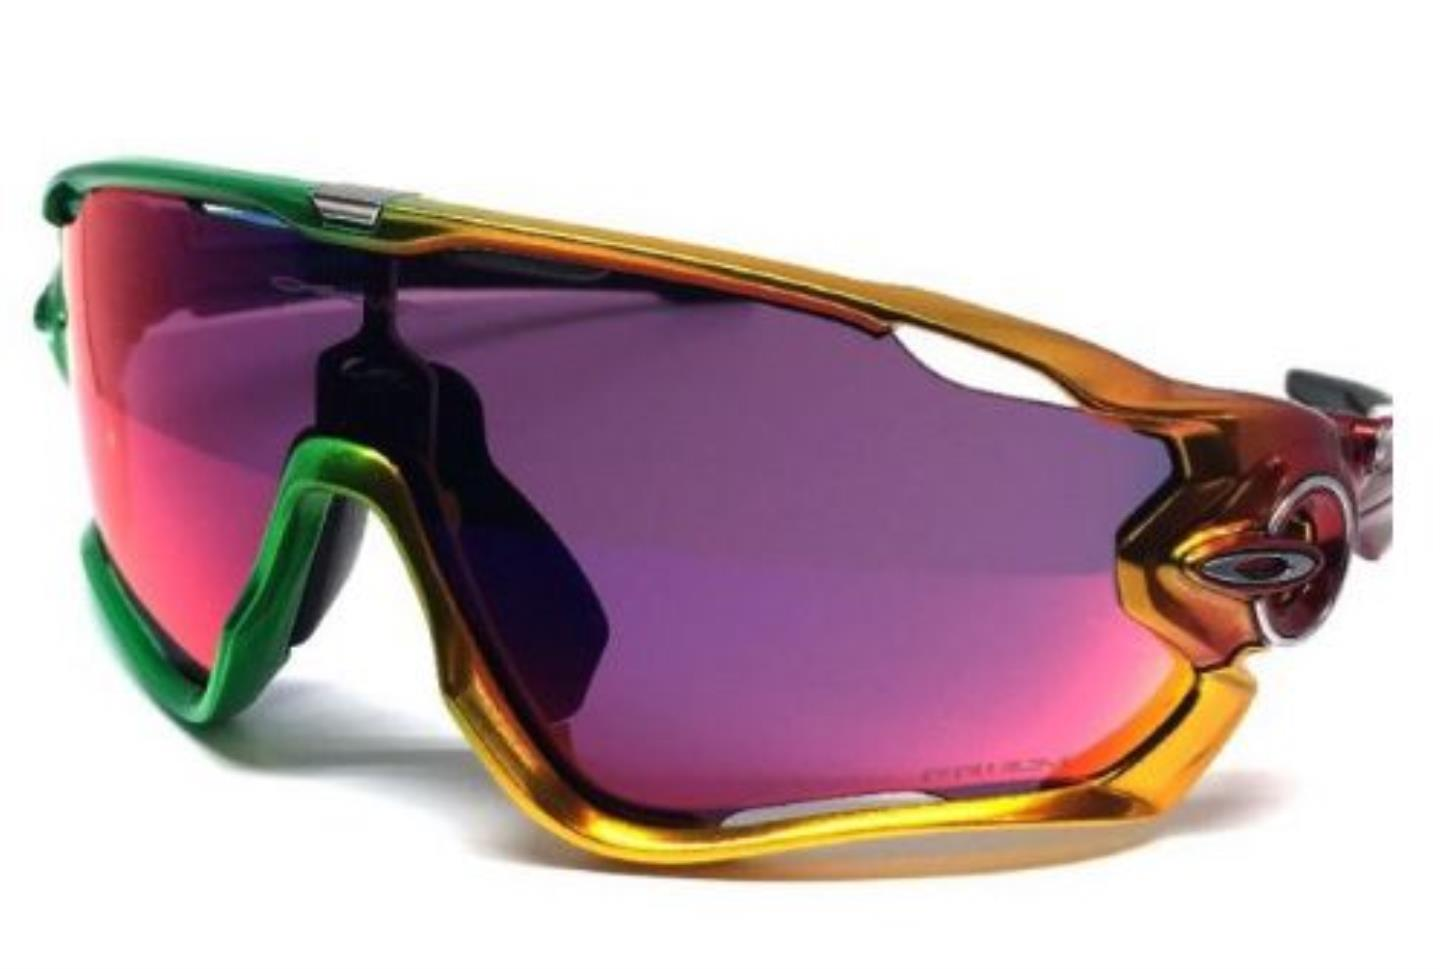 Oakley γυαλιά Jawbreaker - Multichrome